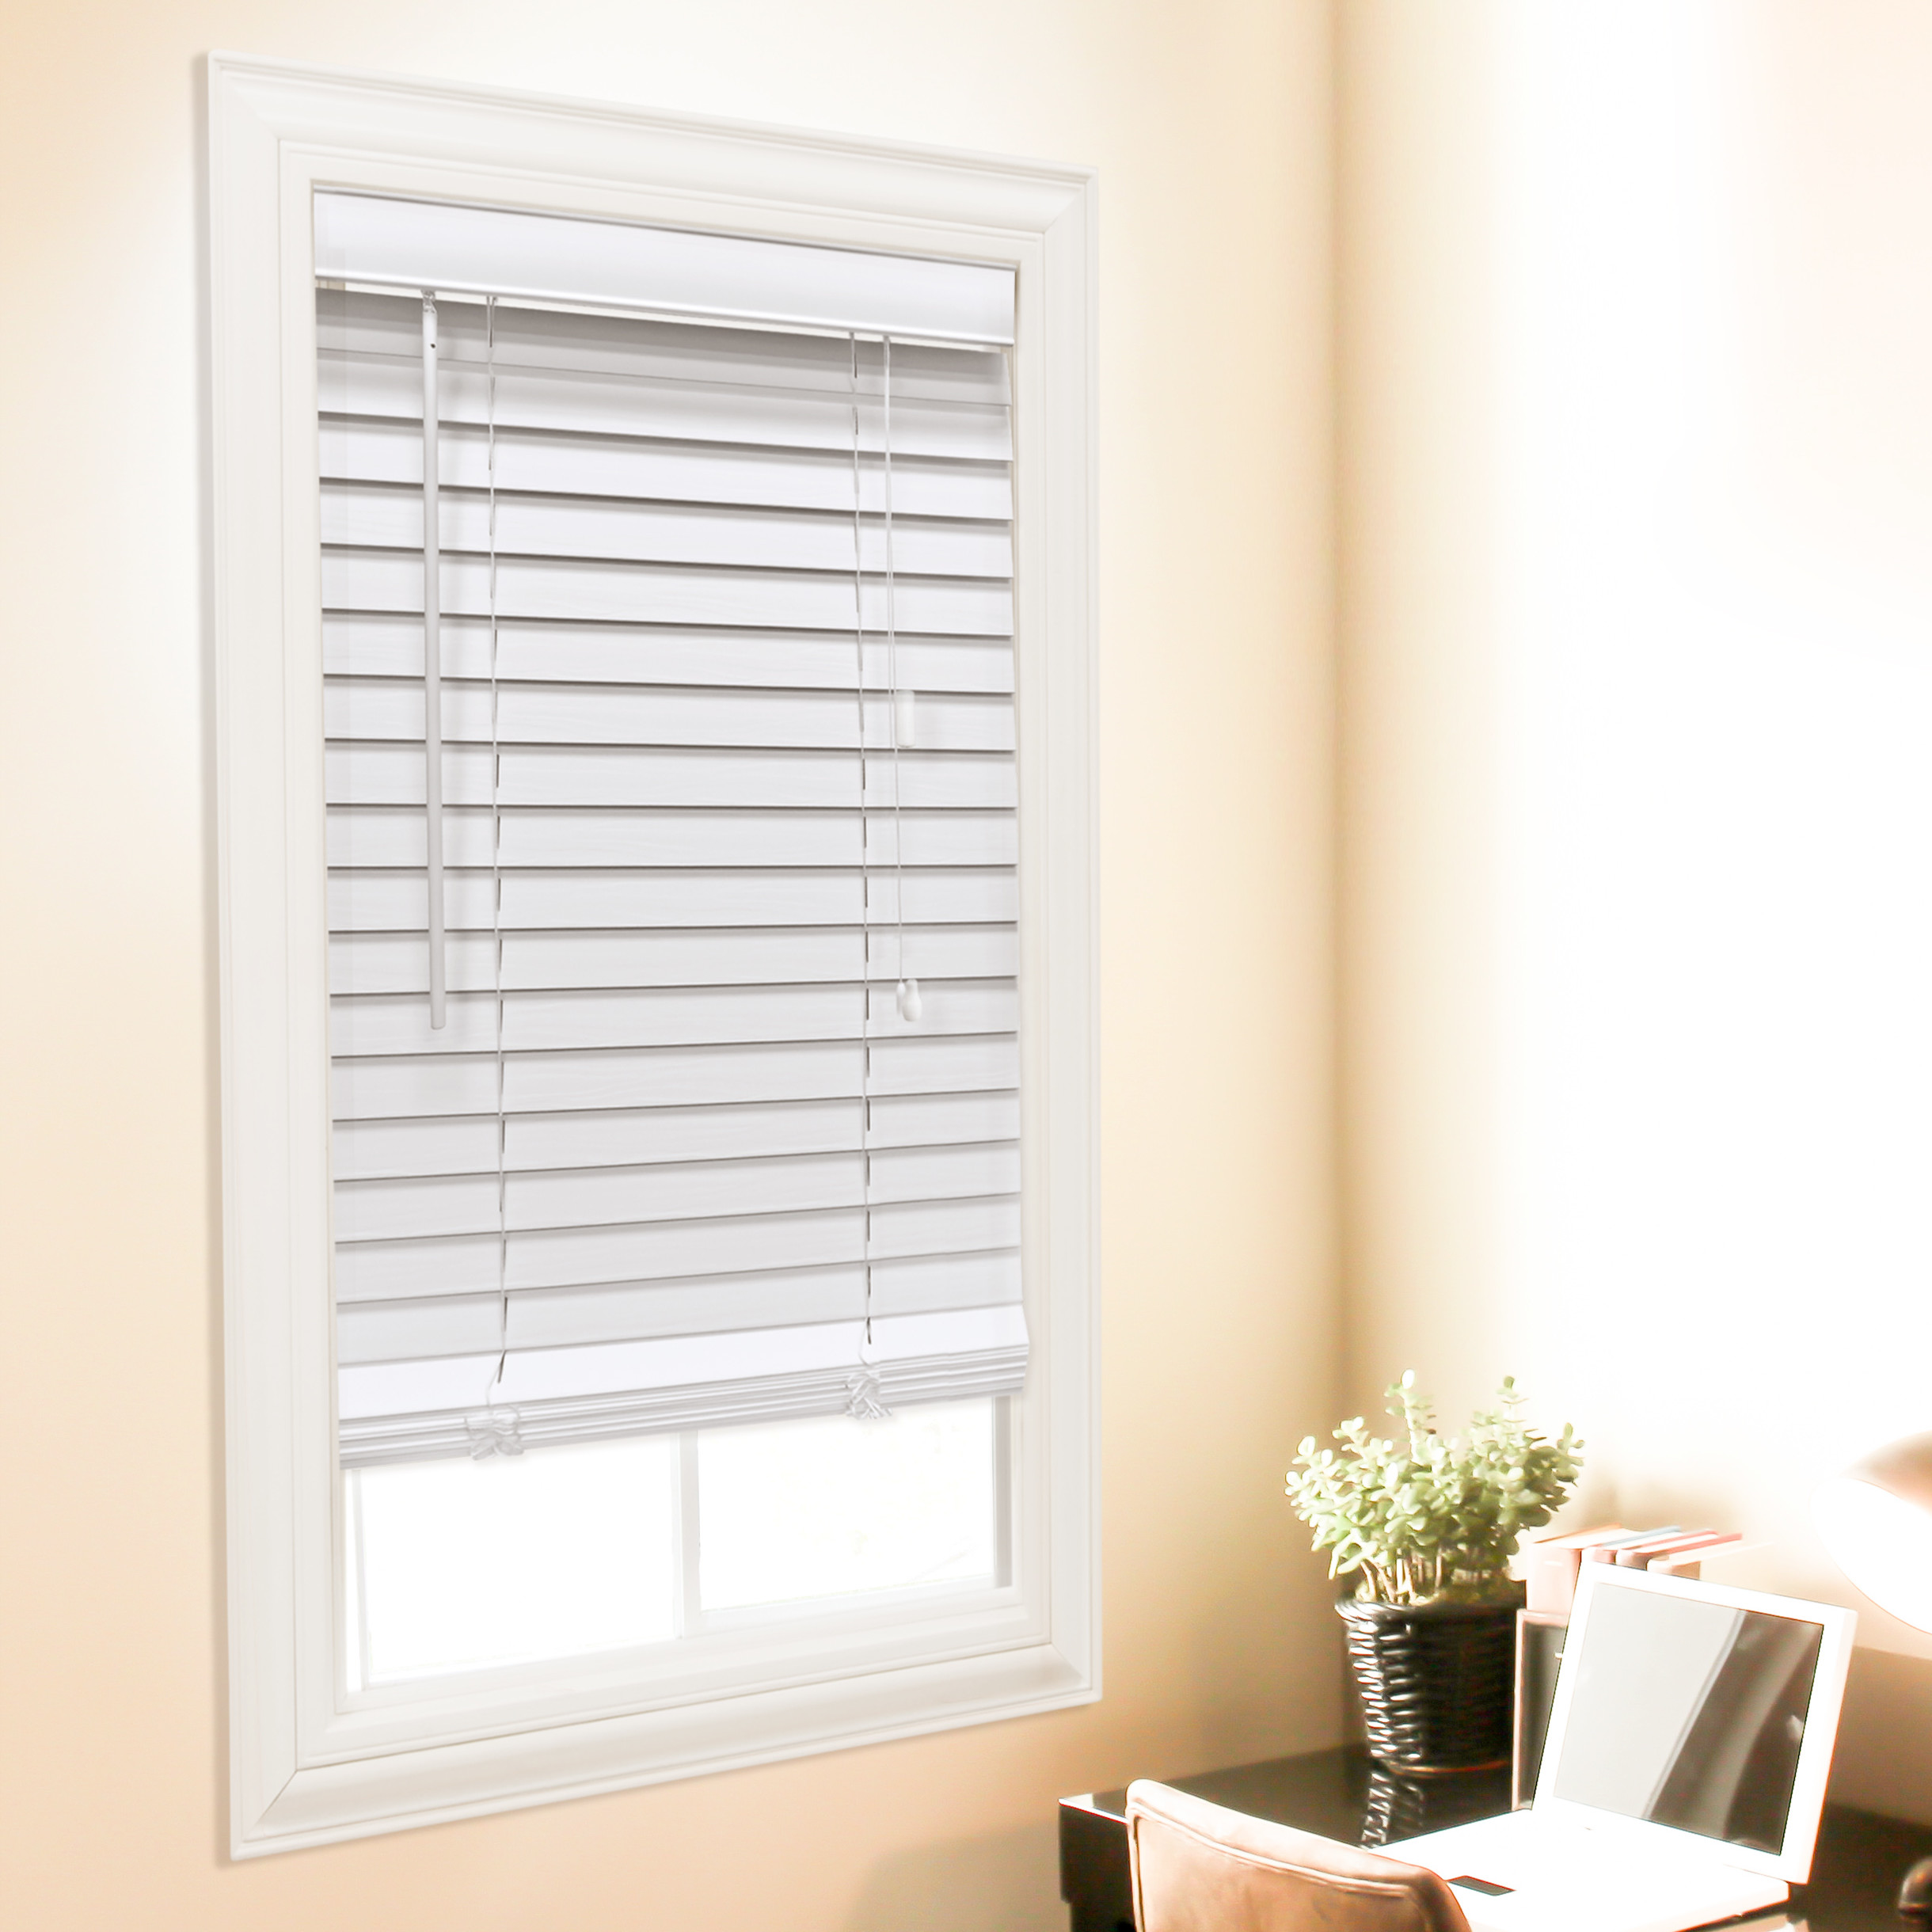 Bali Blinds Menards Card Payment Menards Window Blinds